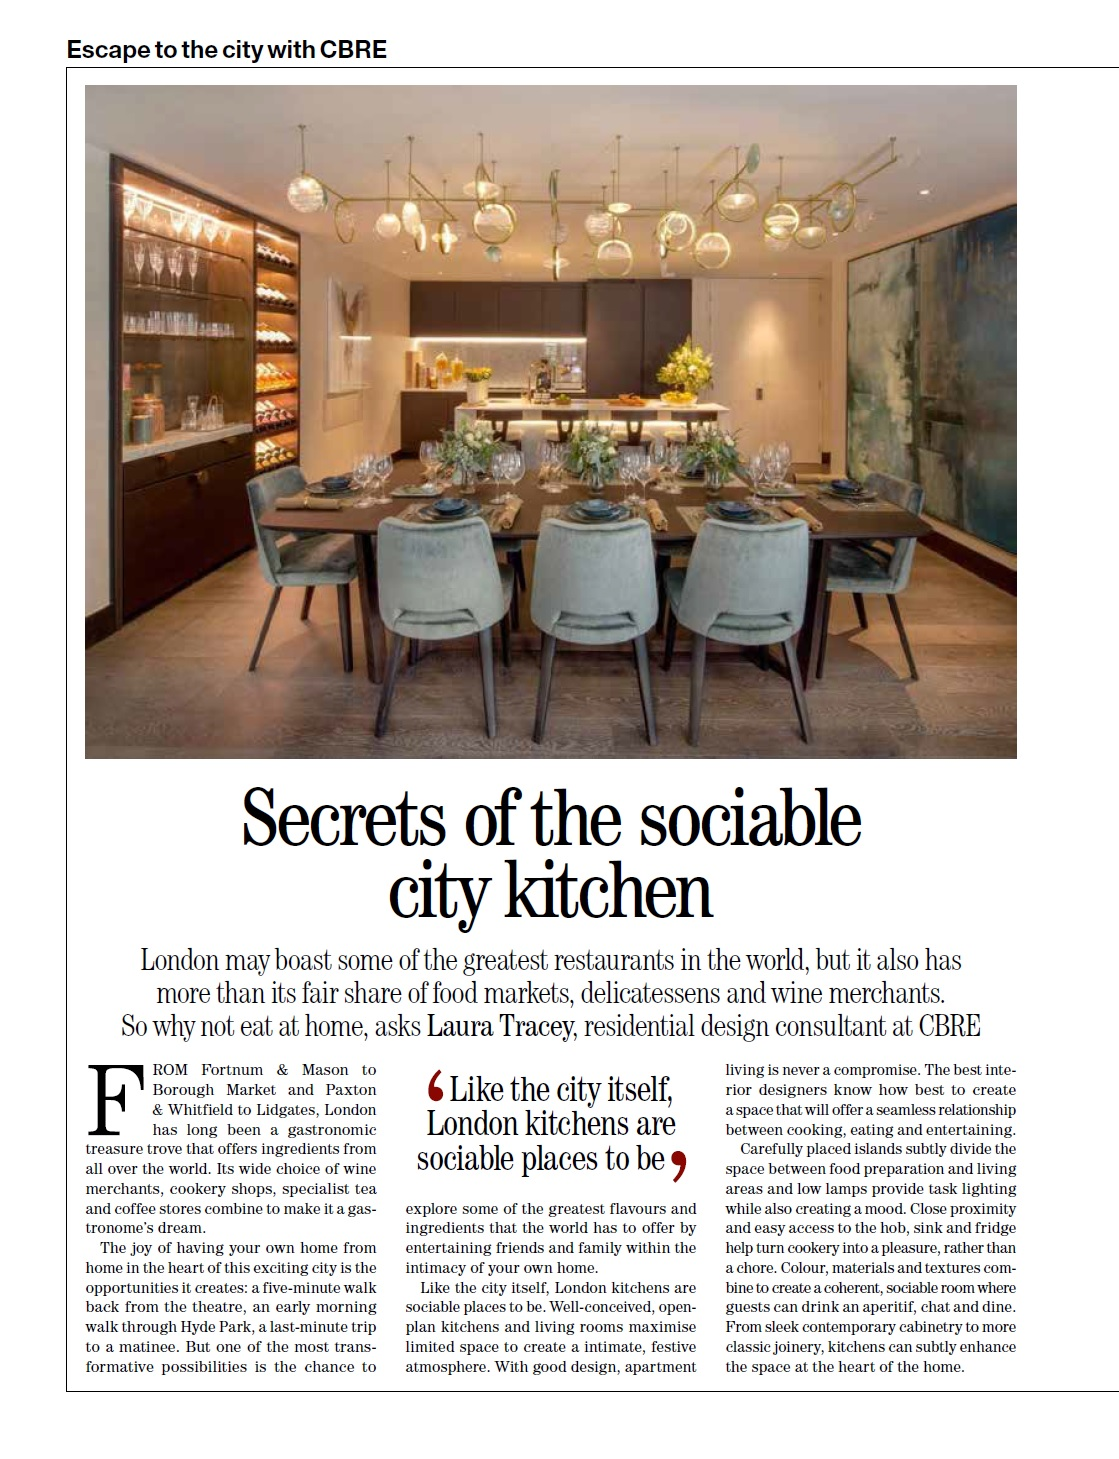 Article on London Kitchens